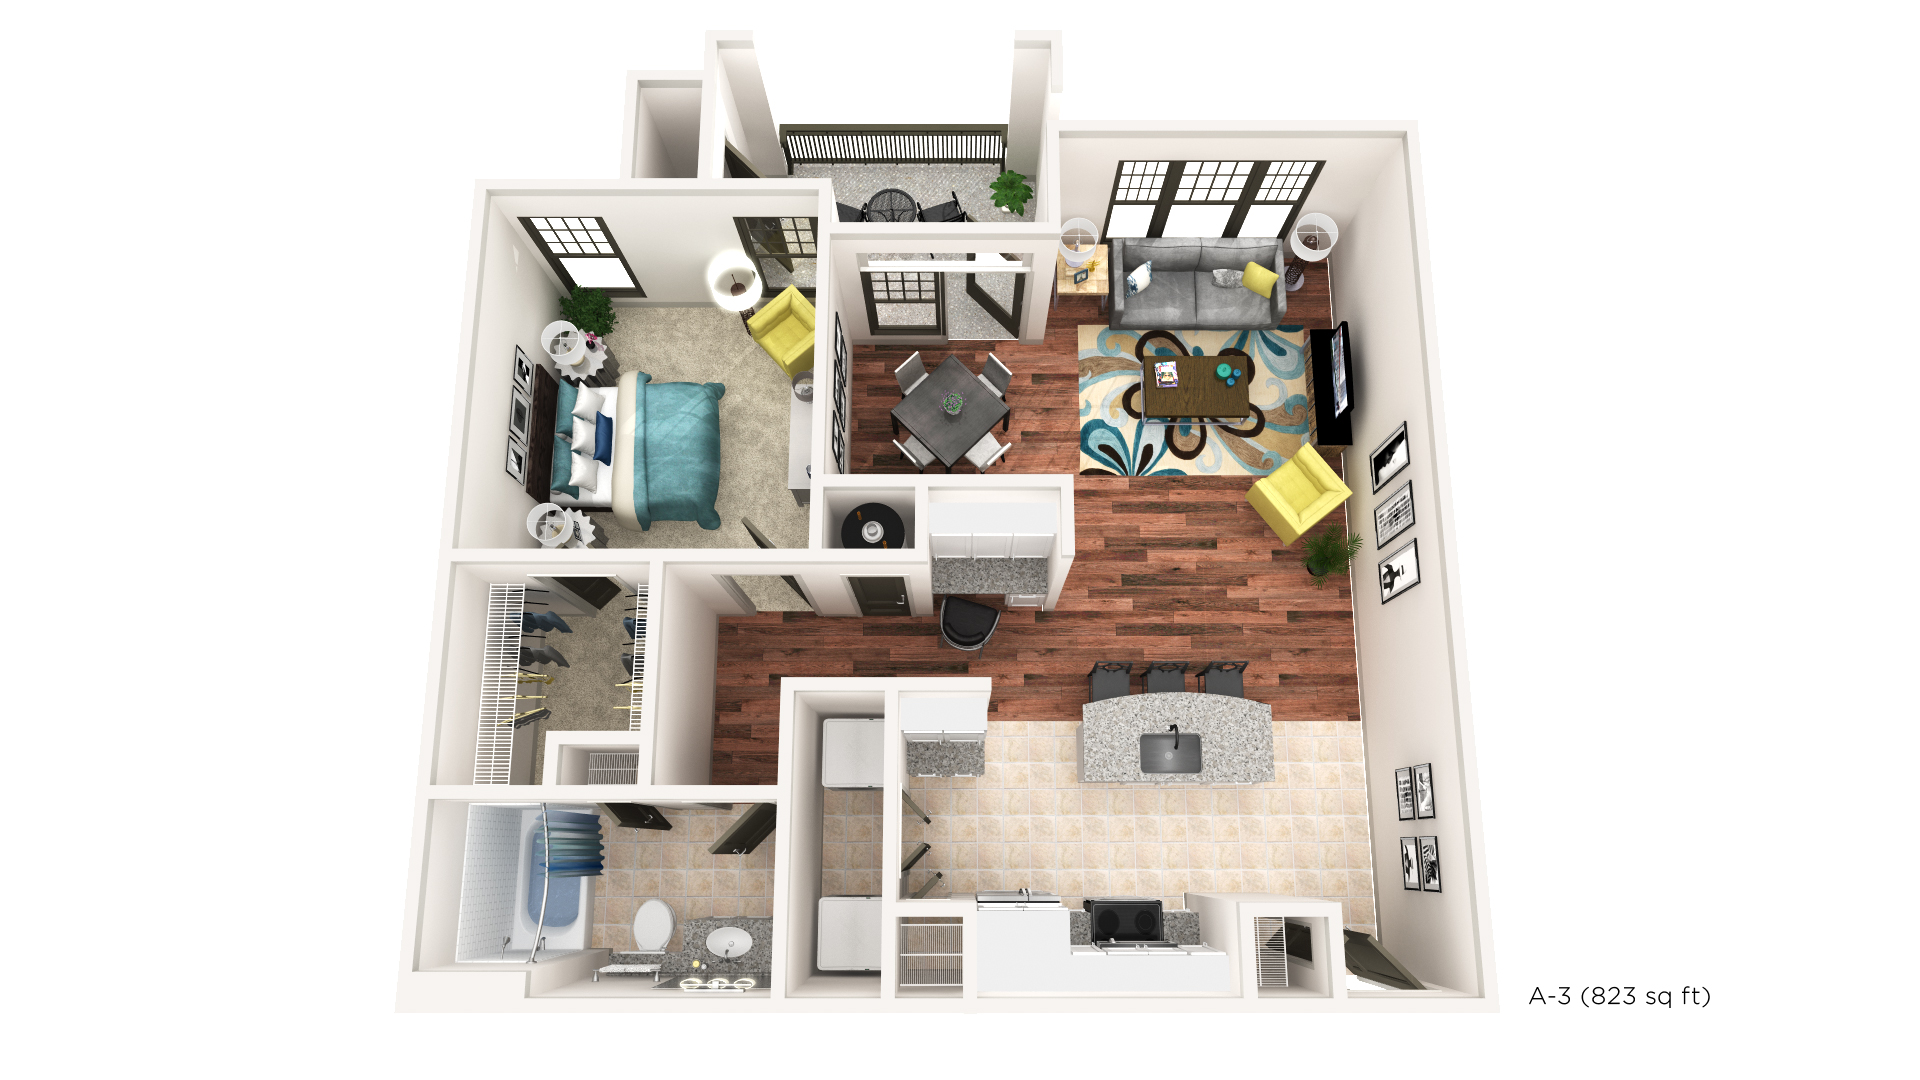 Brookleigh Flats Luxury Apartment Homes - Floorplan - A-3